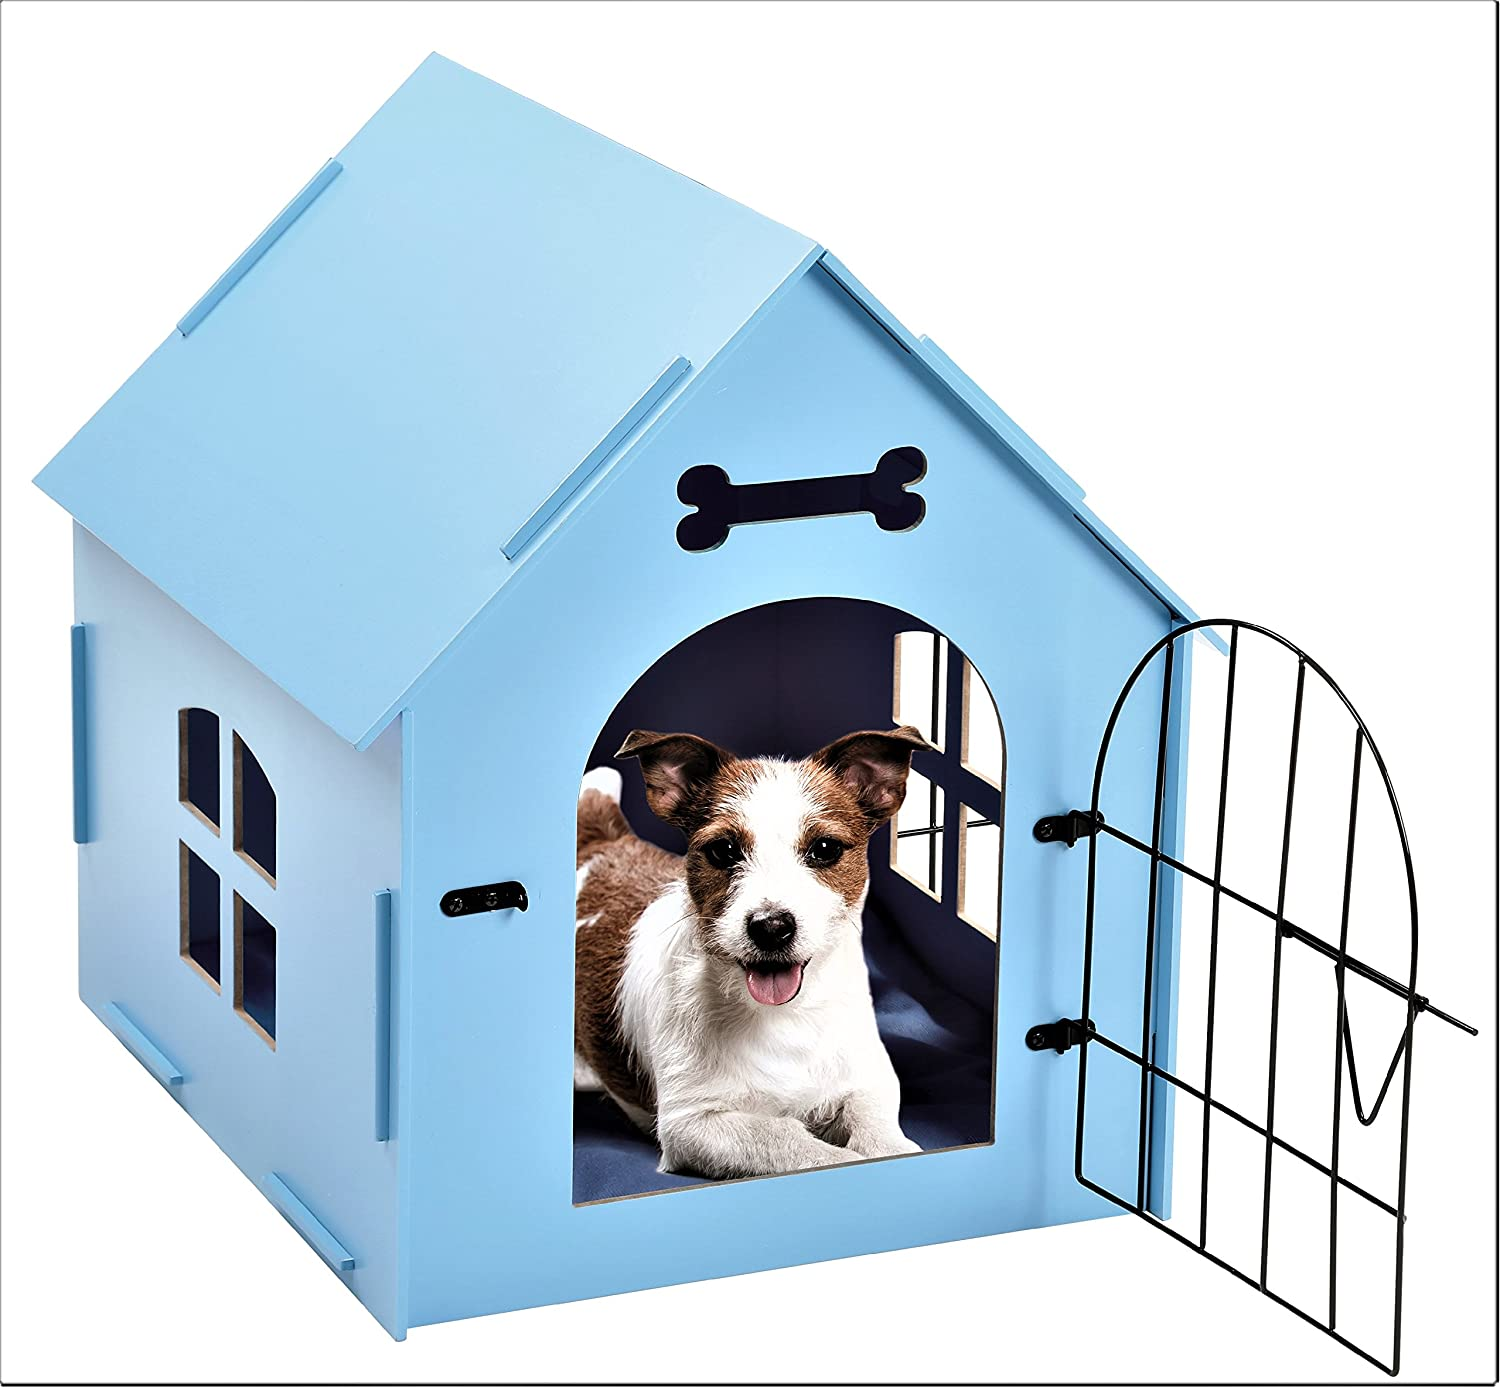 Tristar Products Us Craft Wood Dog House With Door And Window Indoor Kennel For Small Dogs Cats Pet With Bed Mat Blue Amazon Co Uk Pet Supplies